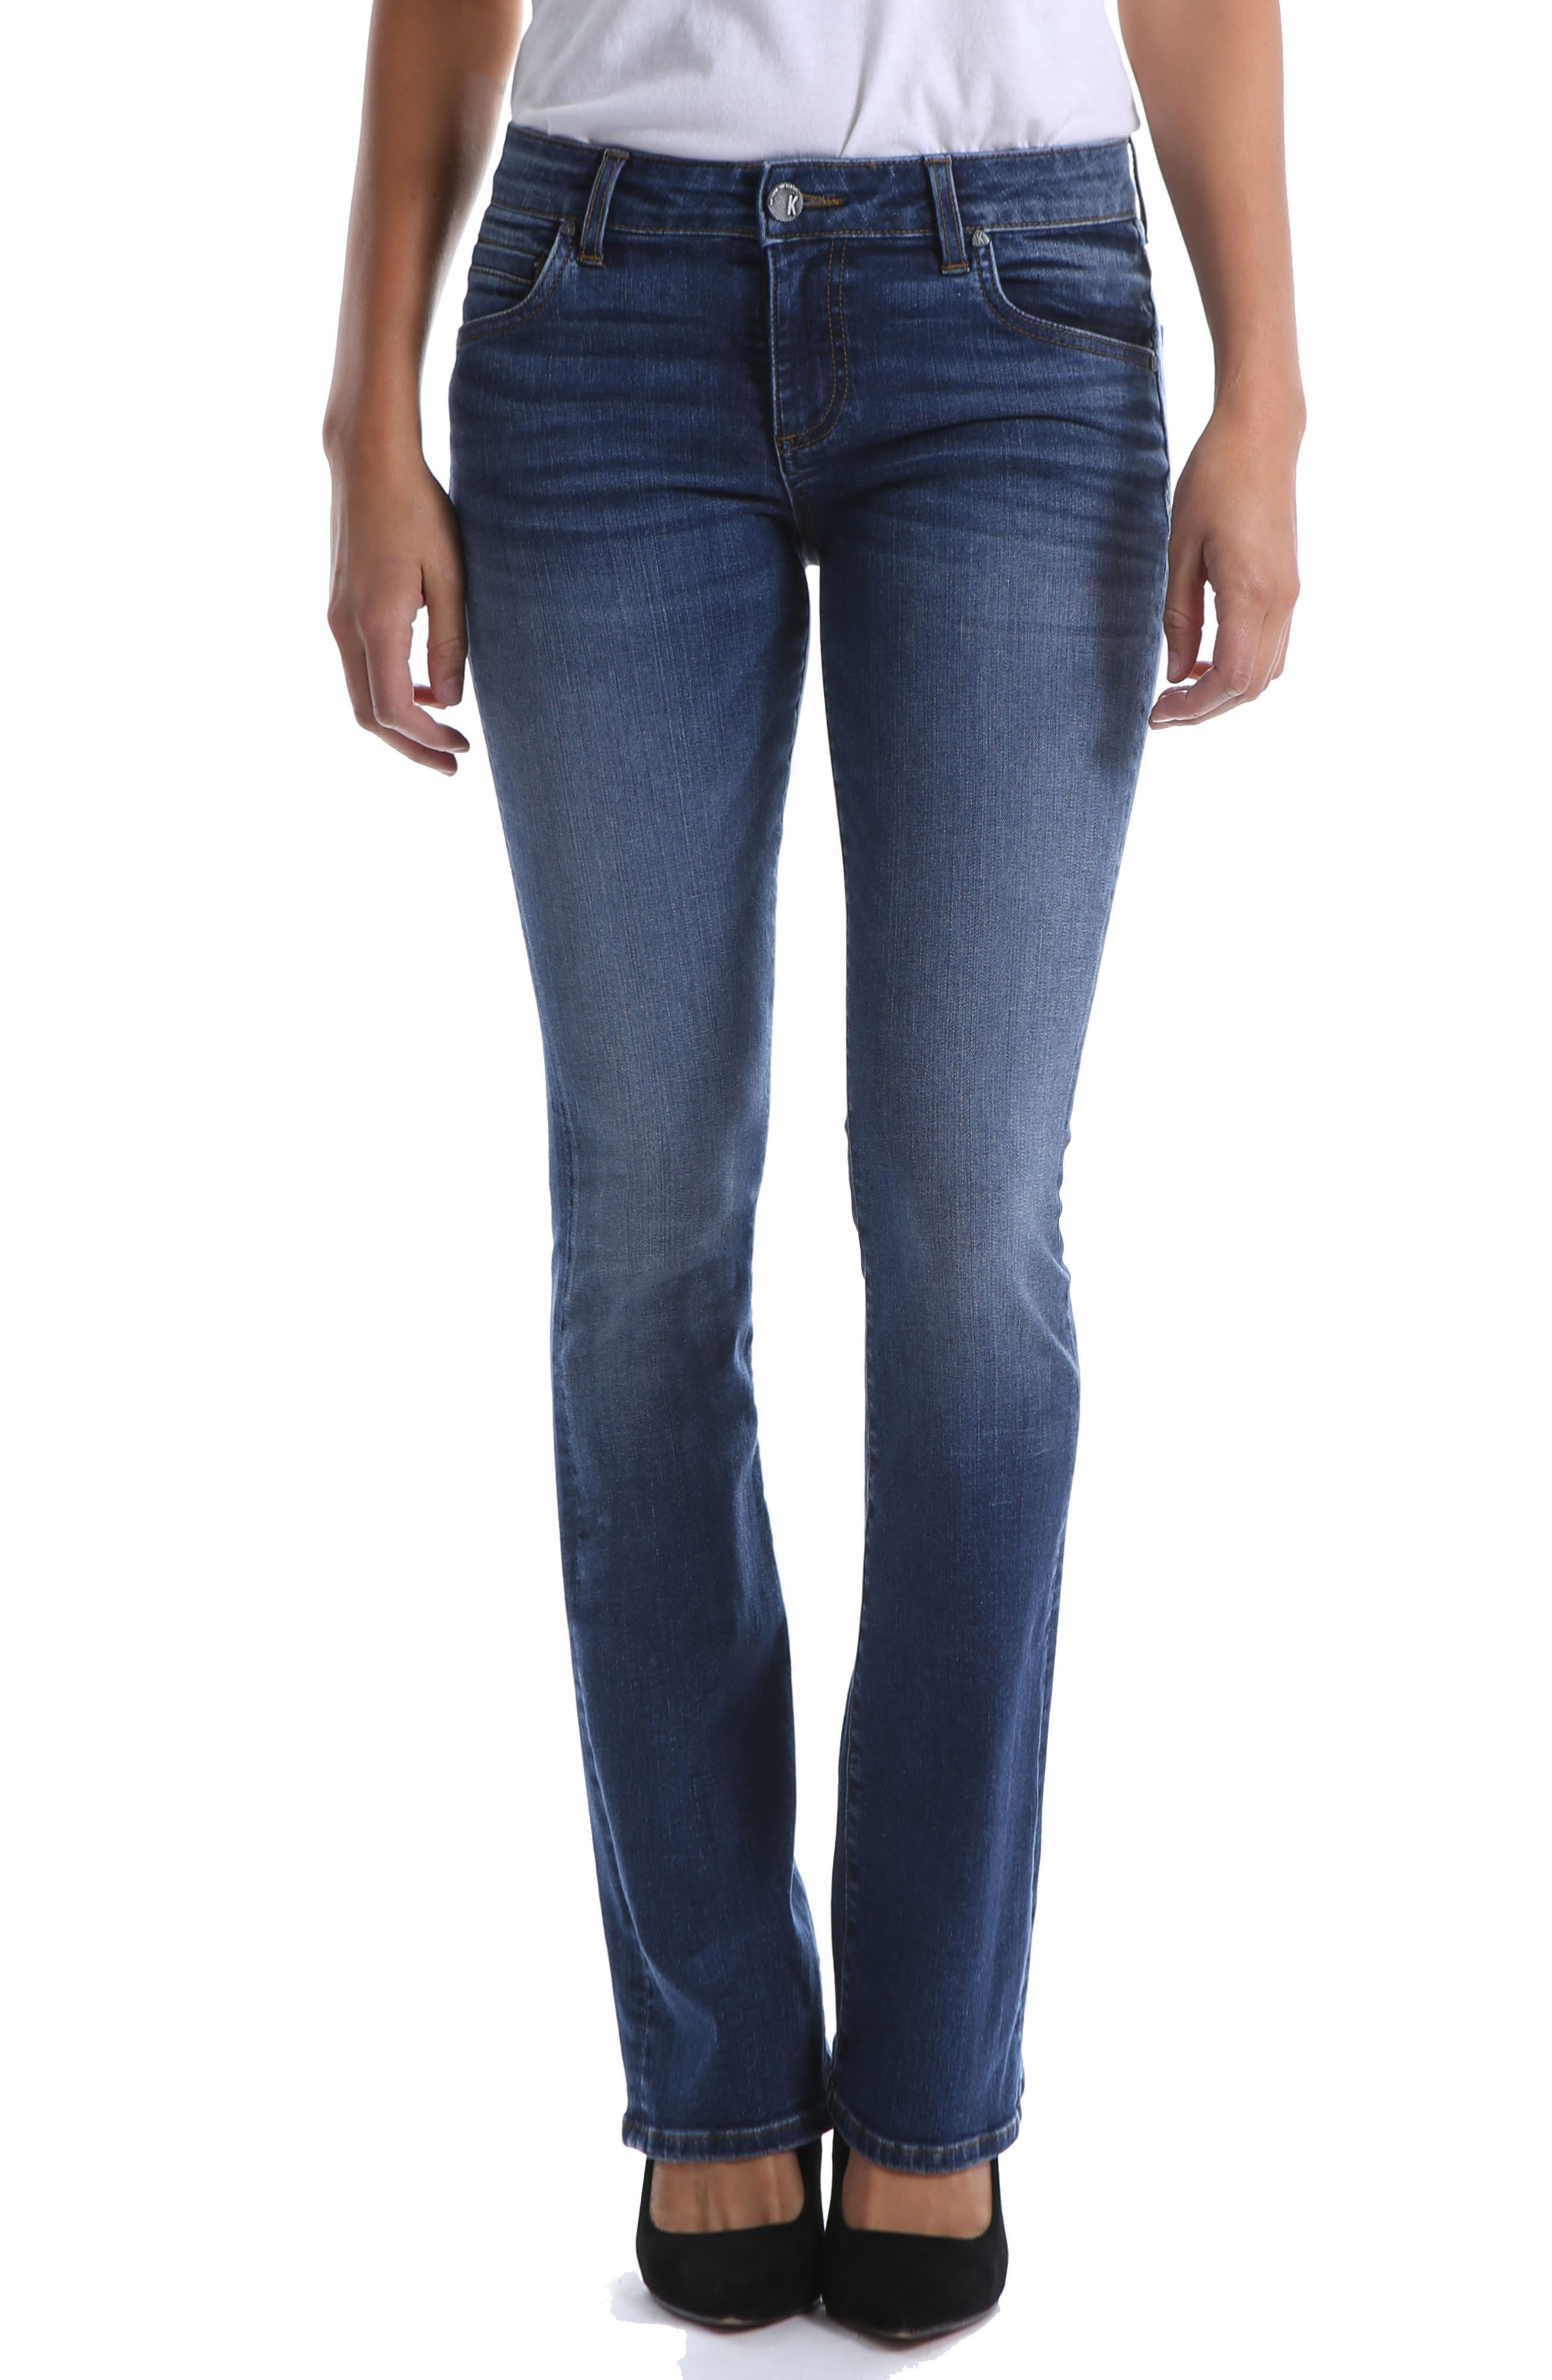 KUT FROM THE KLOTH Natalie Bootleg Jeans, Main, color, FELLOWSHIP